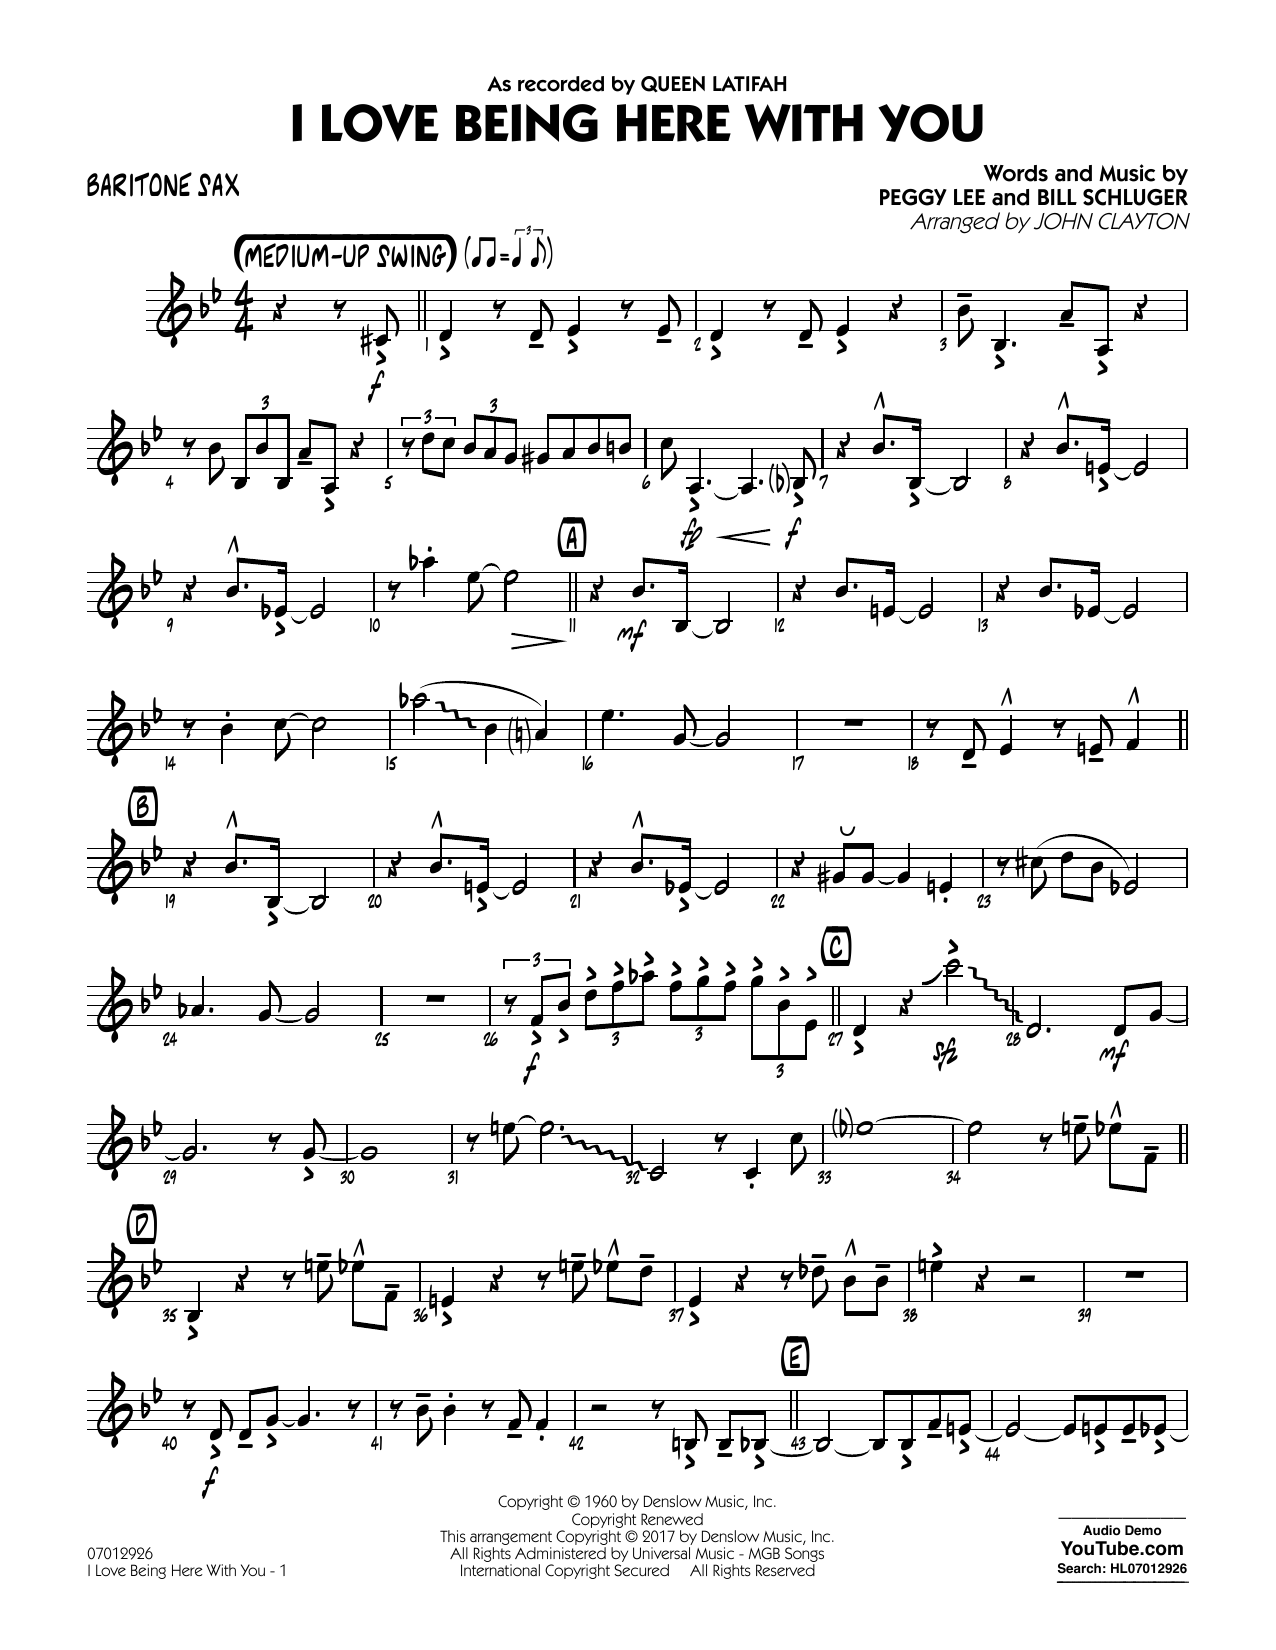 John Clayton I Love Being Here with You (Key: Db) - Baritone Sax sheet music notes and chords. Download Printable PDF.